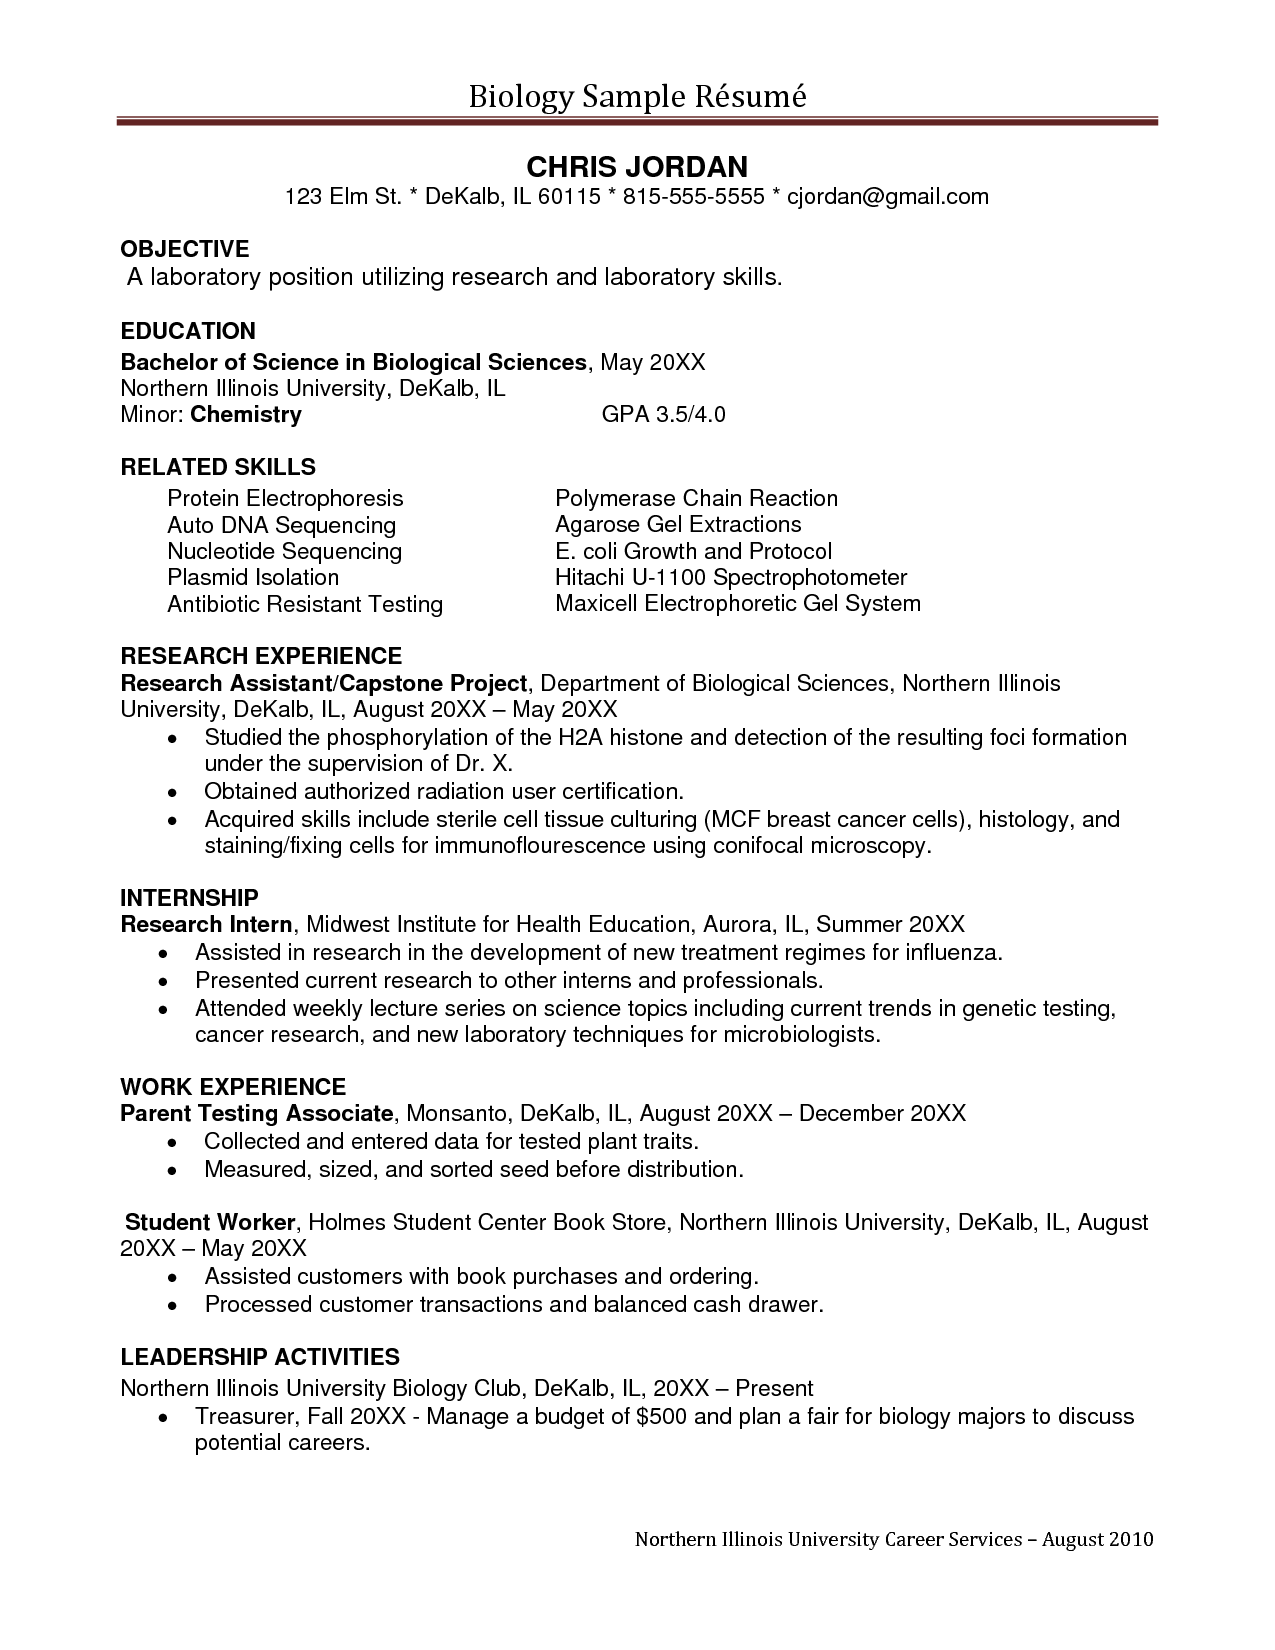 Internship Objective Resume Sample Undergraduate Research Assistant Resume Sampleĺ